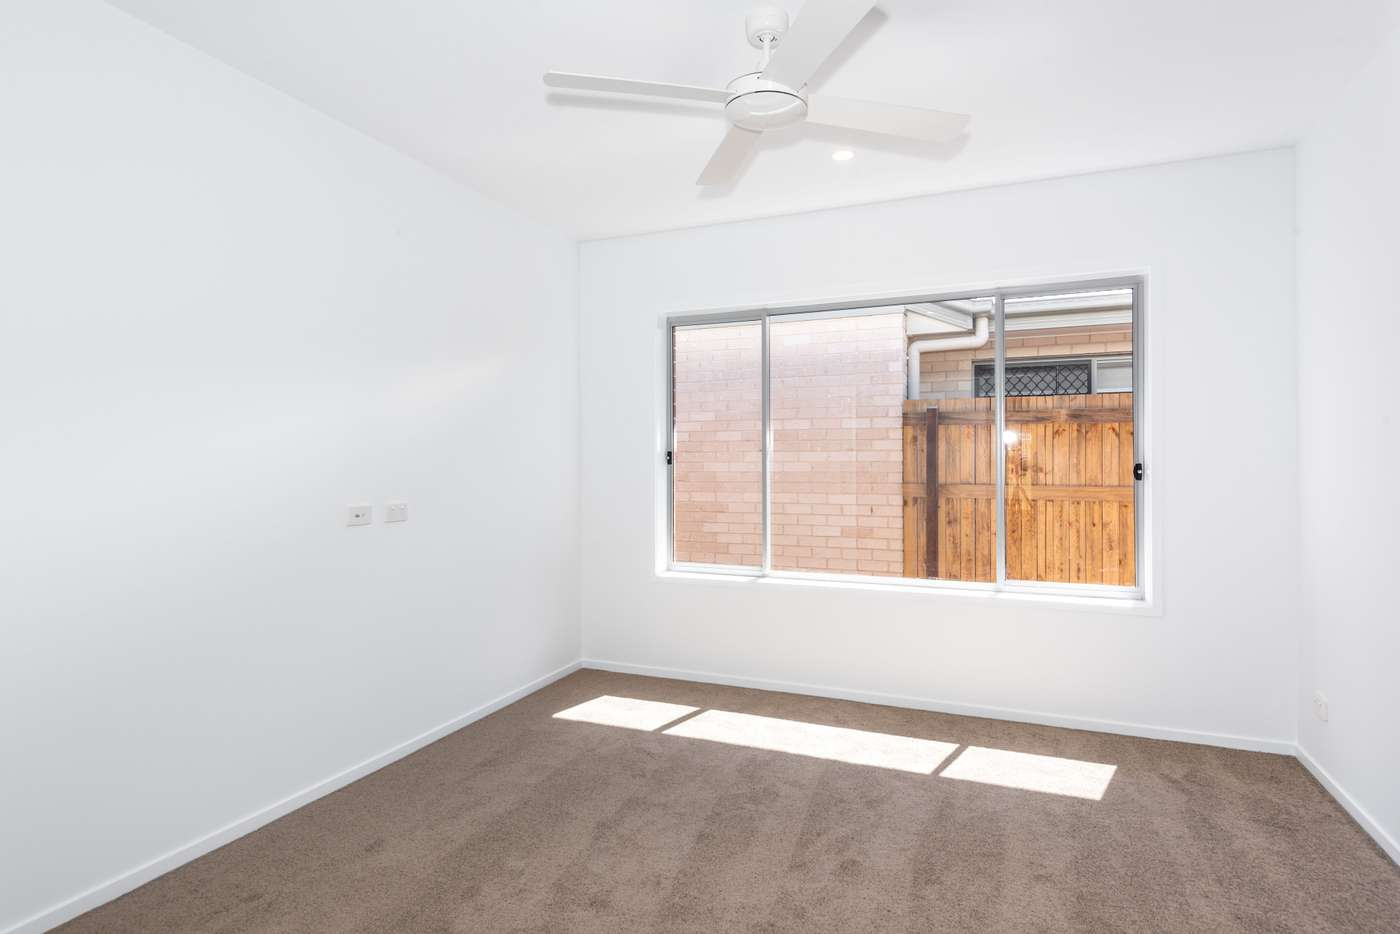 Sixth view of Homely house listing, 8 Cavendish Street, Strathpine QLD 4500